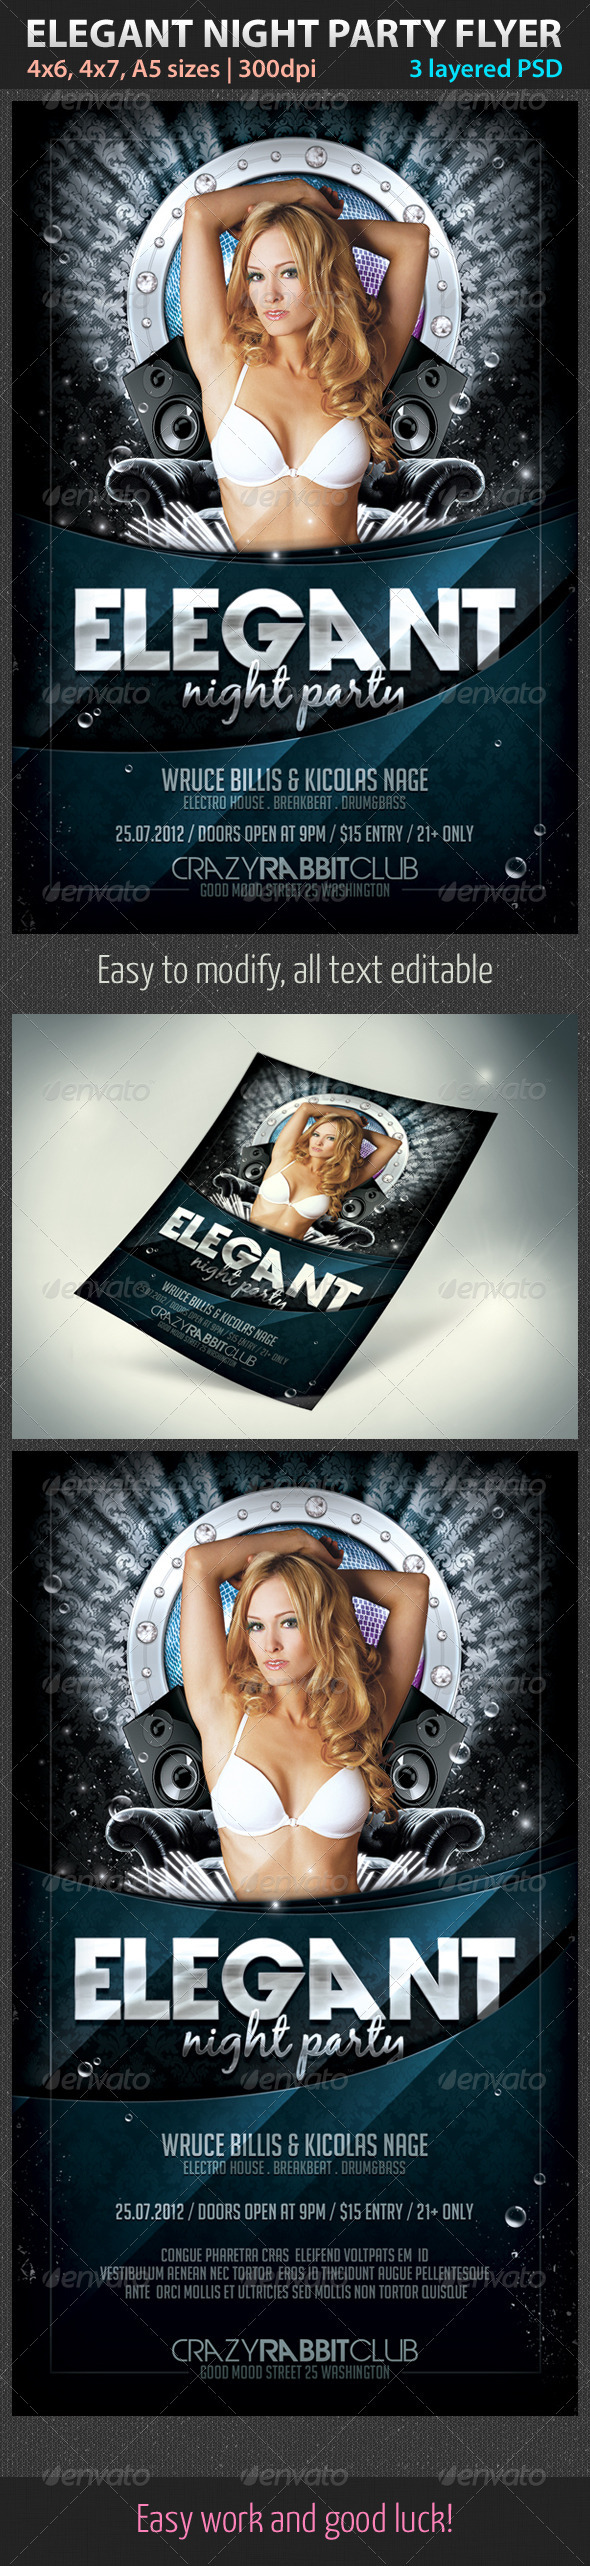 Elegant Night Party Flyer - Clubs & Parties Events